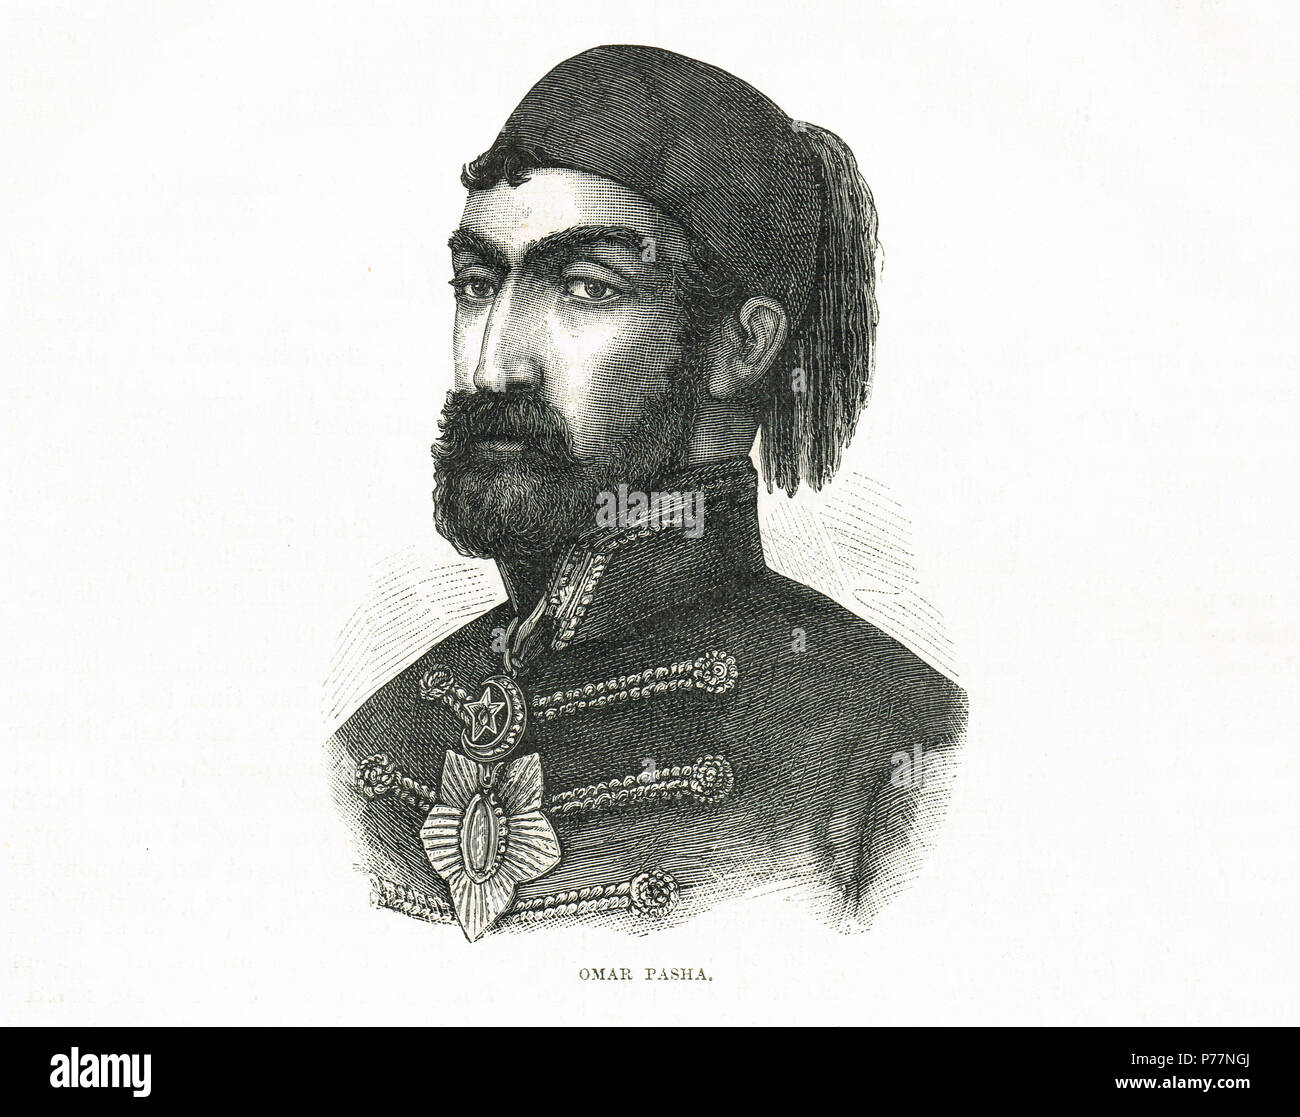 Omar Pasha, commander in the Crimean War, Ottoman field marshal and governor - Stock Image